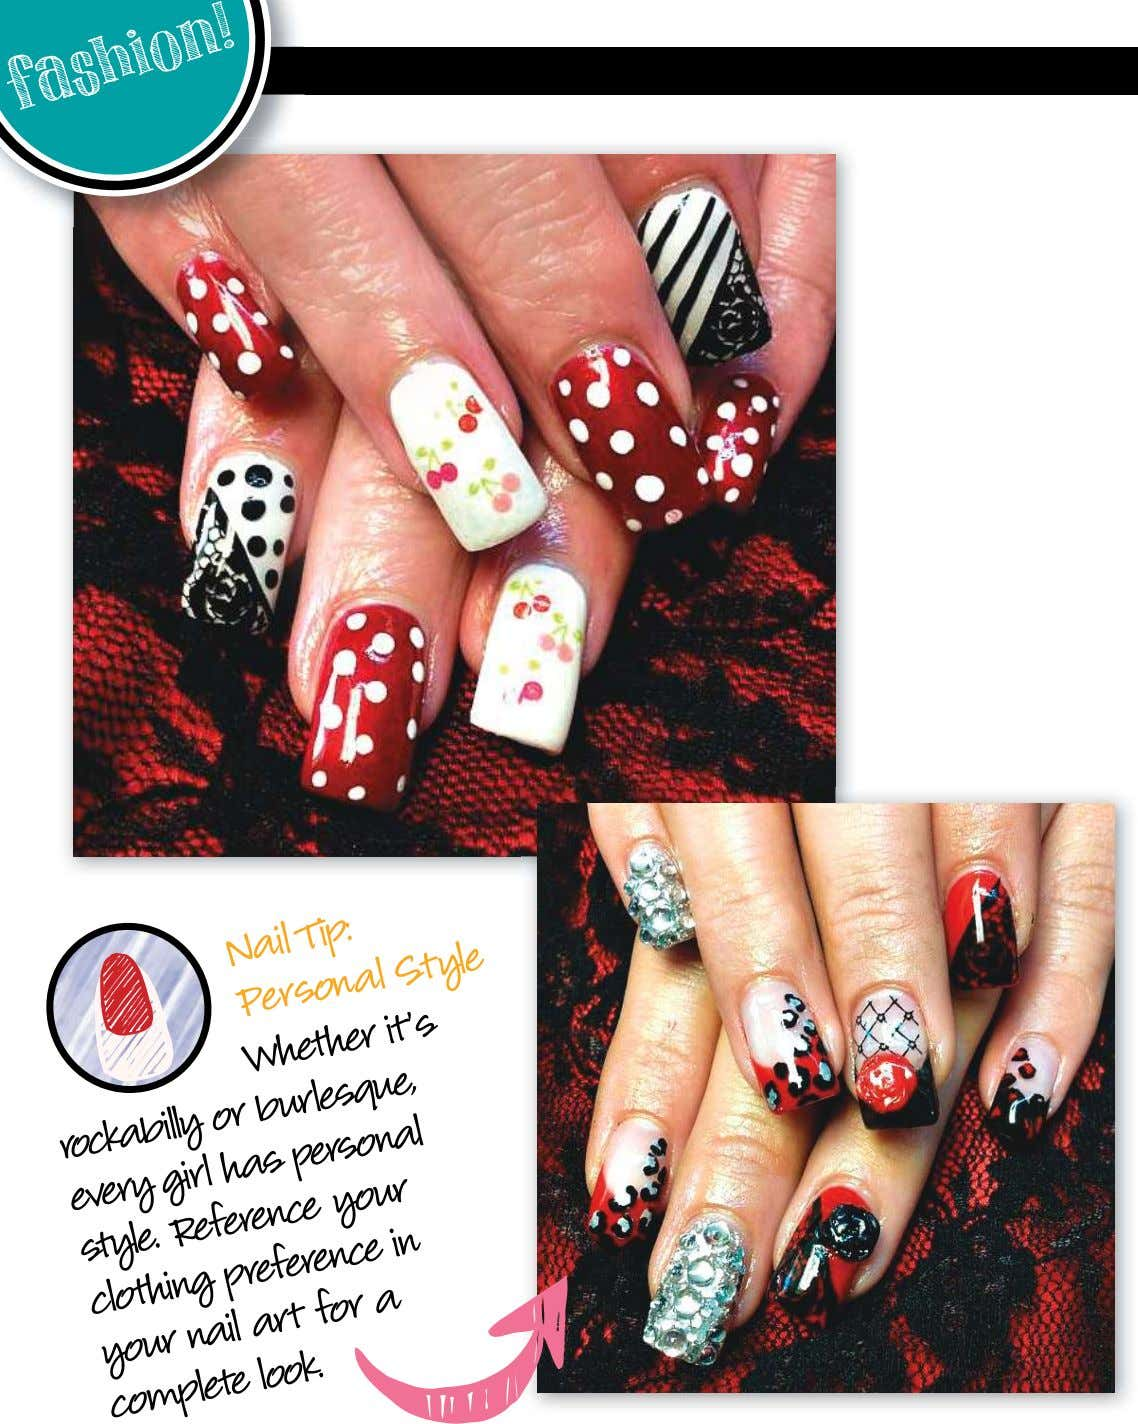 fashion ! Nail Tip: Personal Style a in it's rockabilly has burlesque, Whether or every